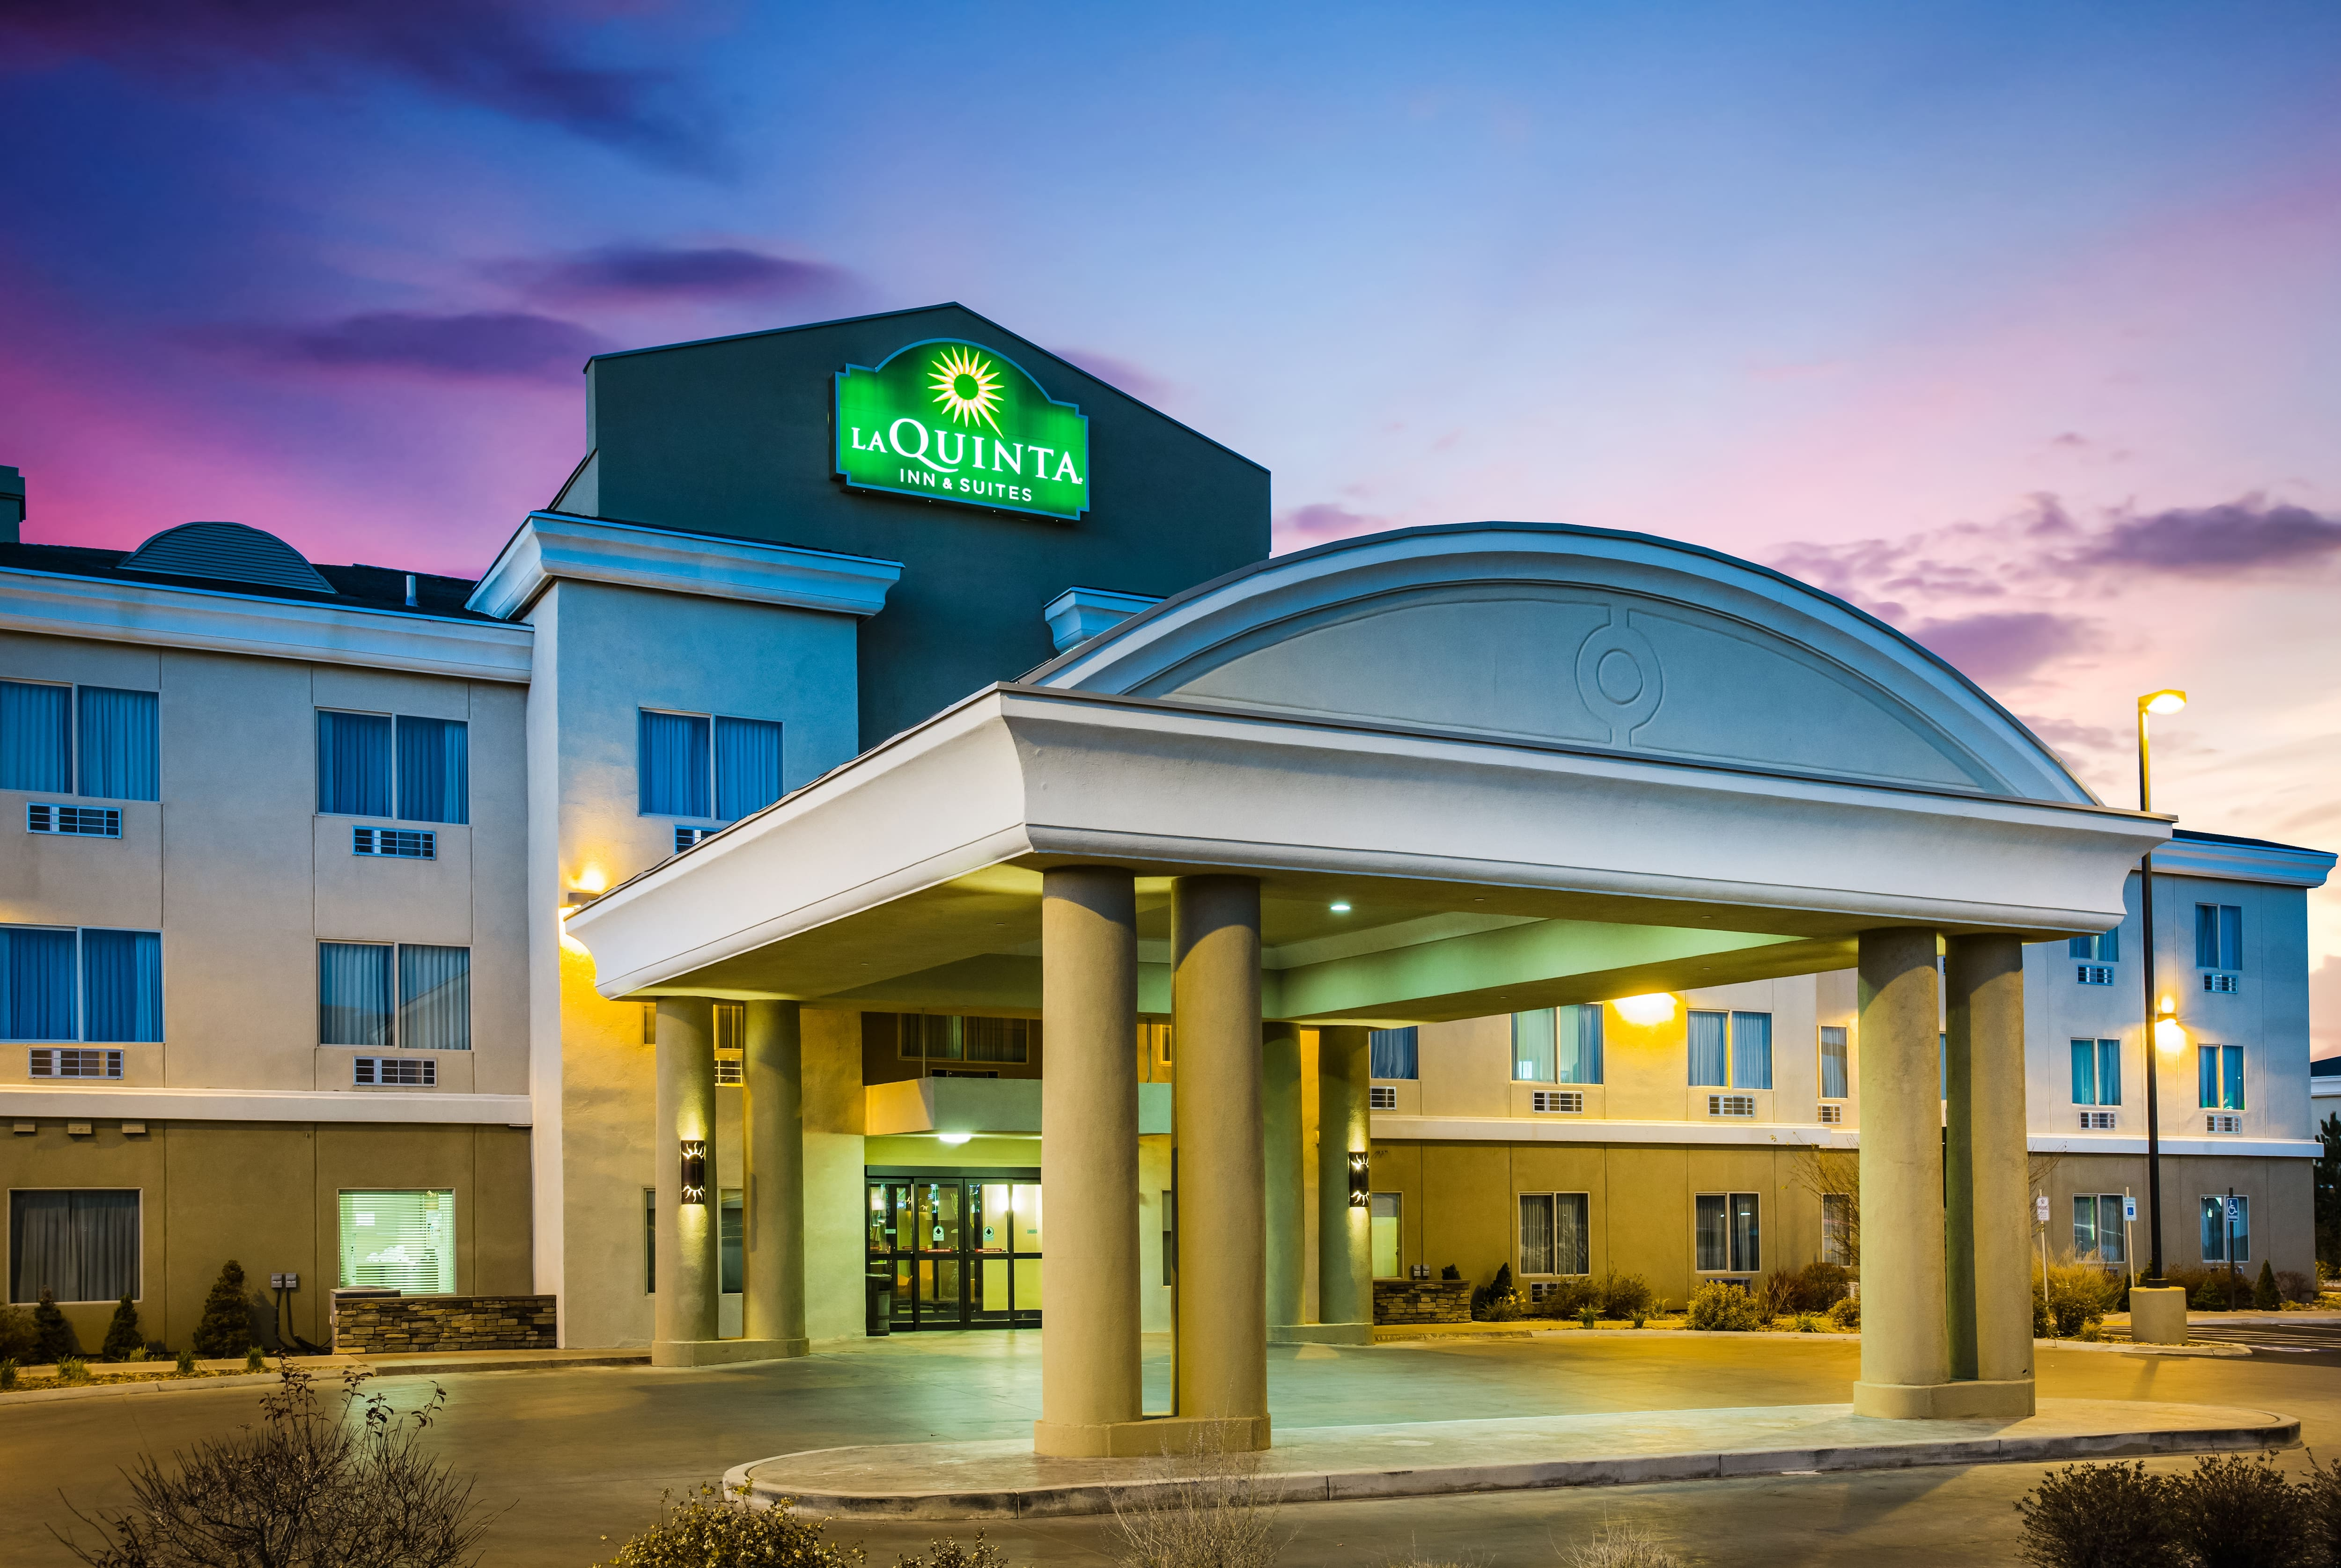 La Quinta Inn Suites By Wyndham Ely Ely Nv Hotels